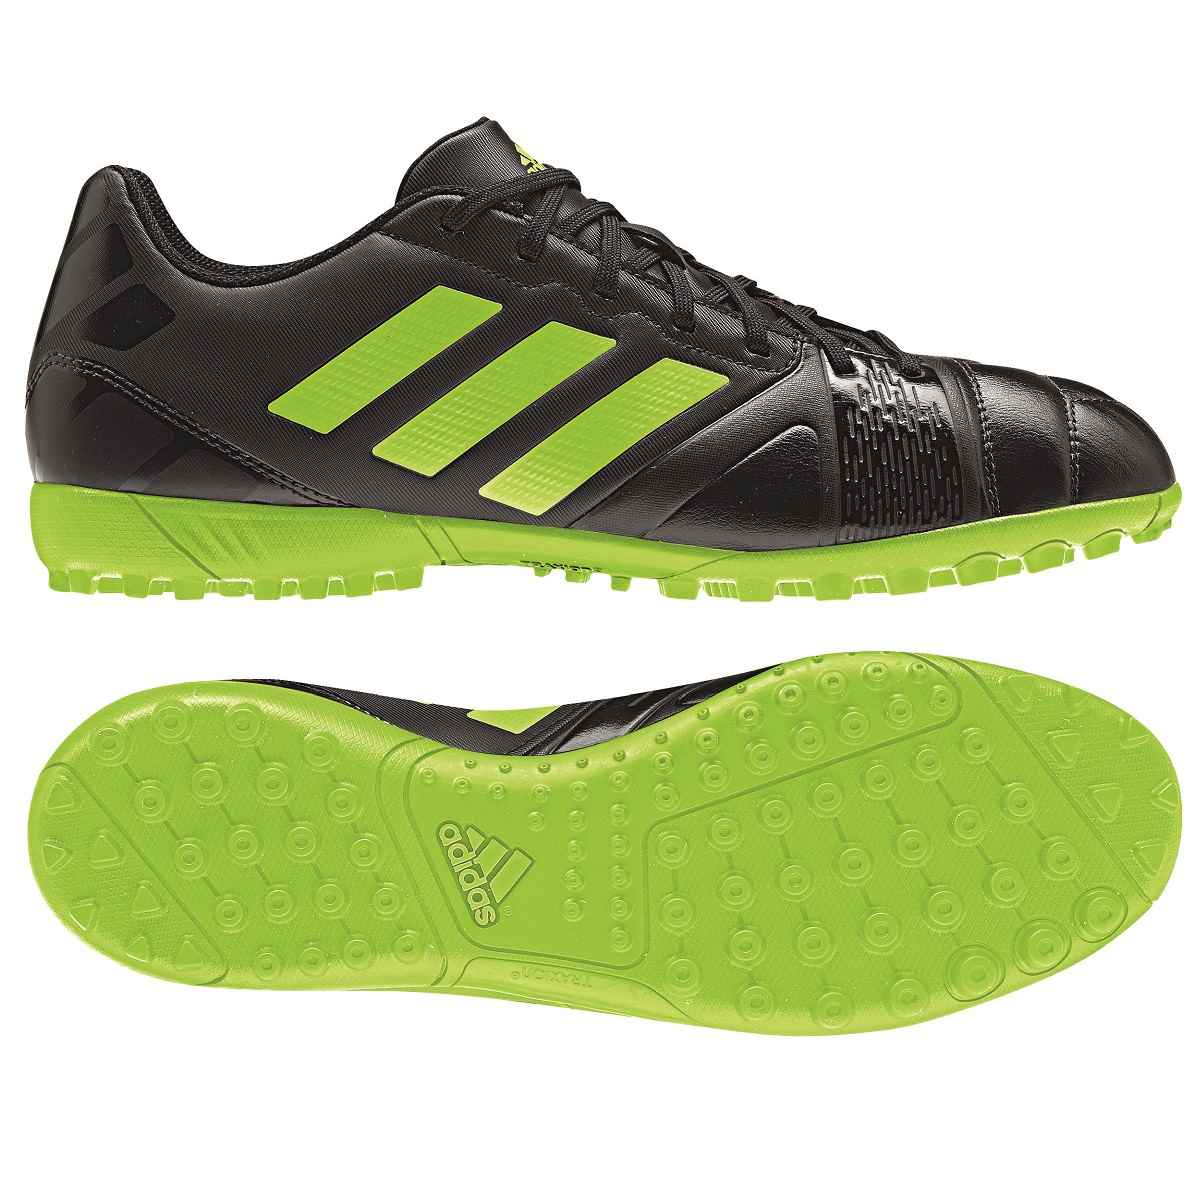 adidas nitrocharge 3 0 trx tf schuhe fu ballschuhe. Black Bedroom Furniture Sets. Home Design Ideas